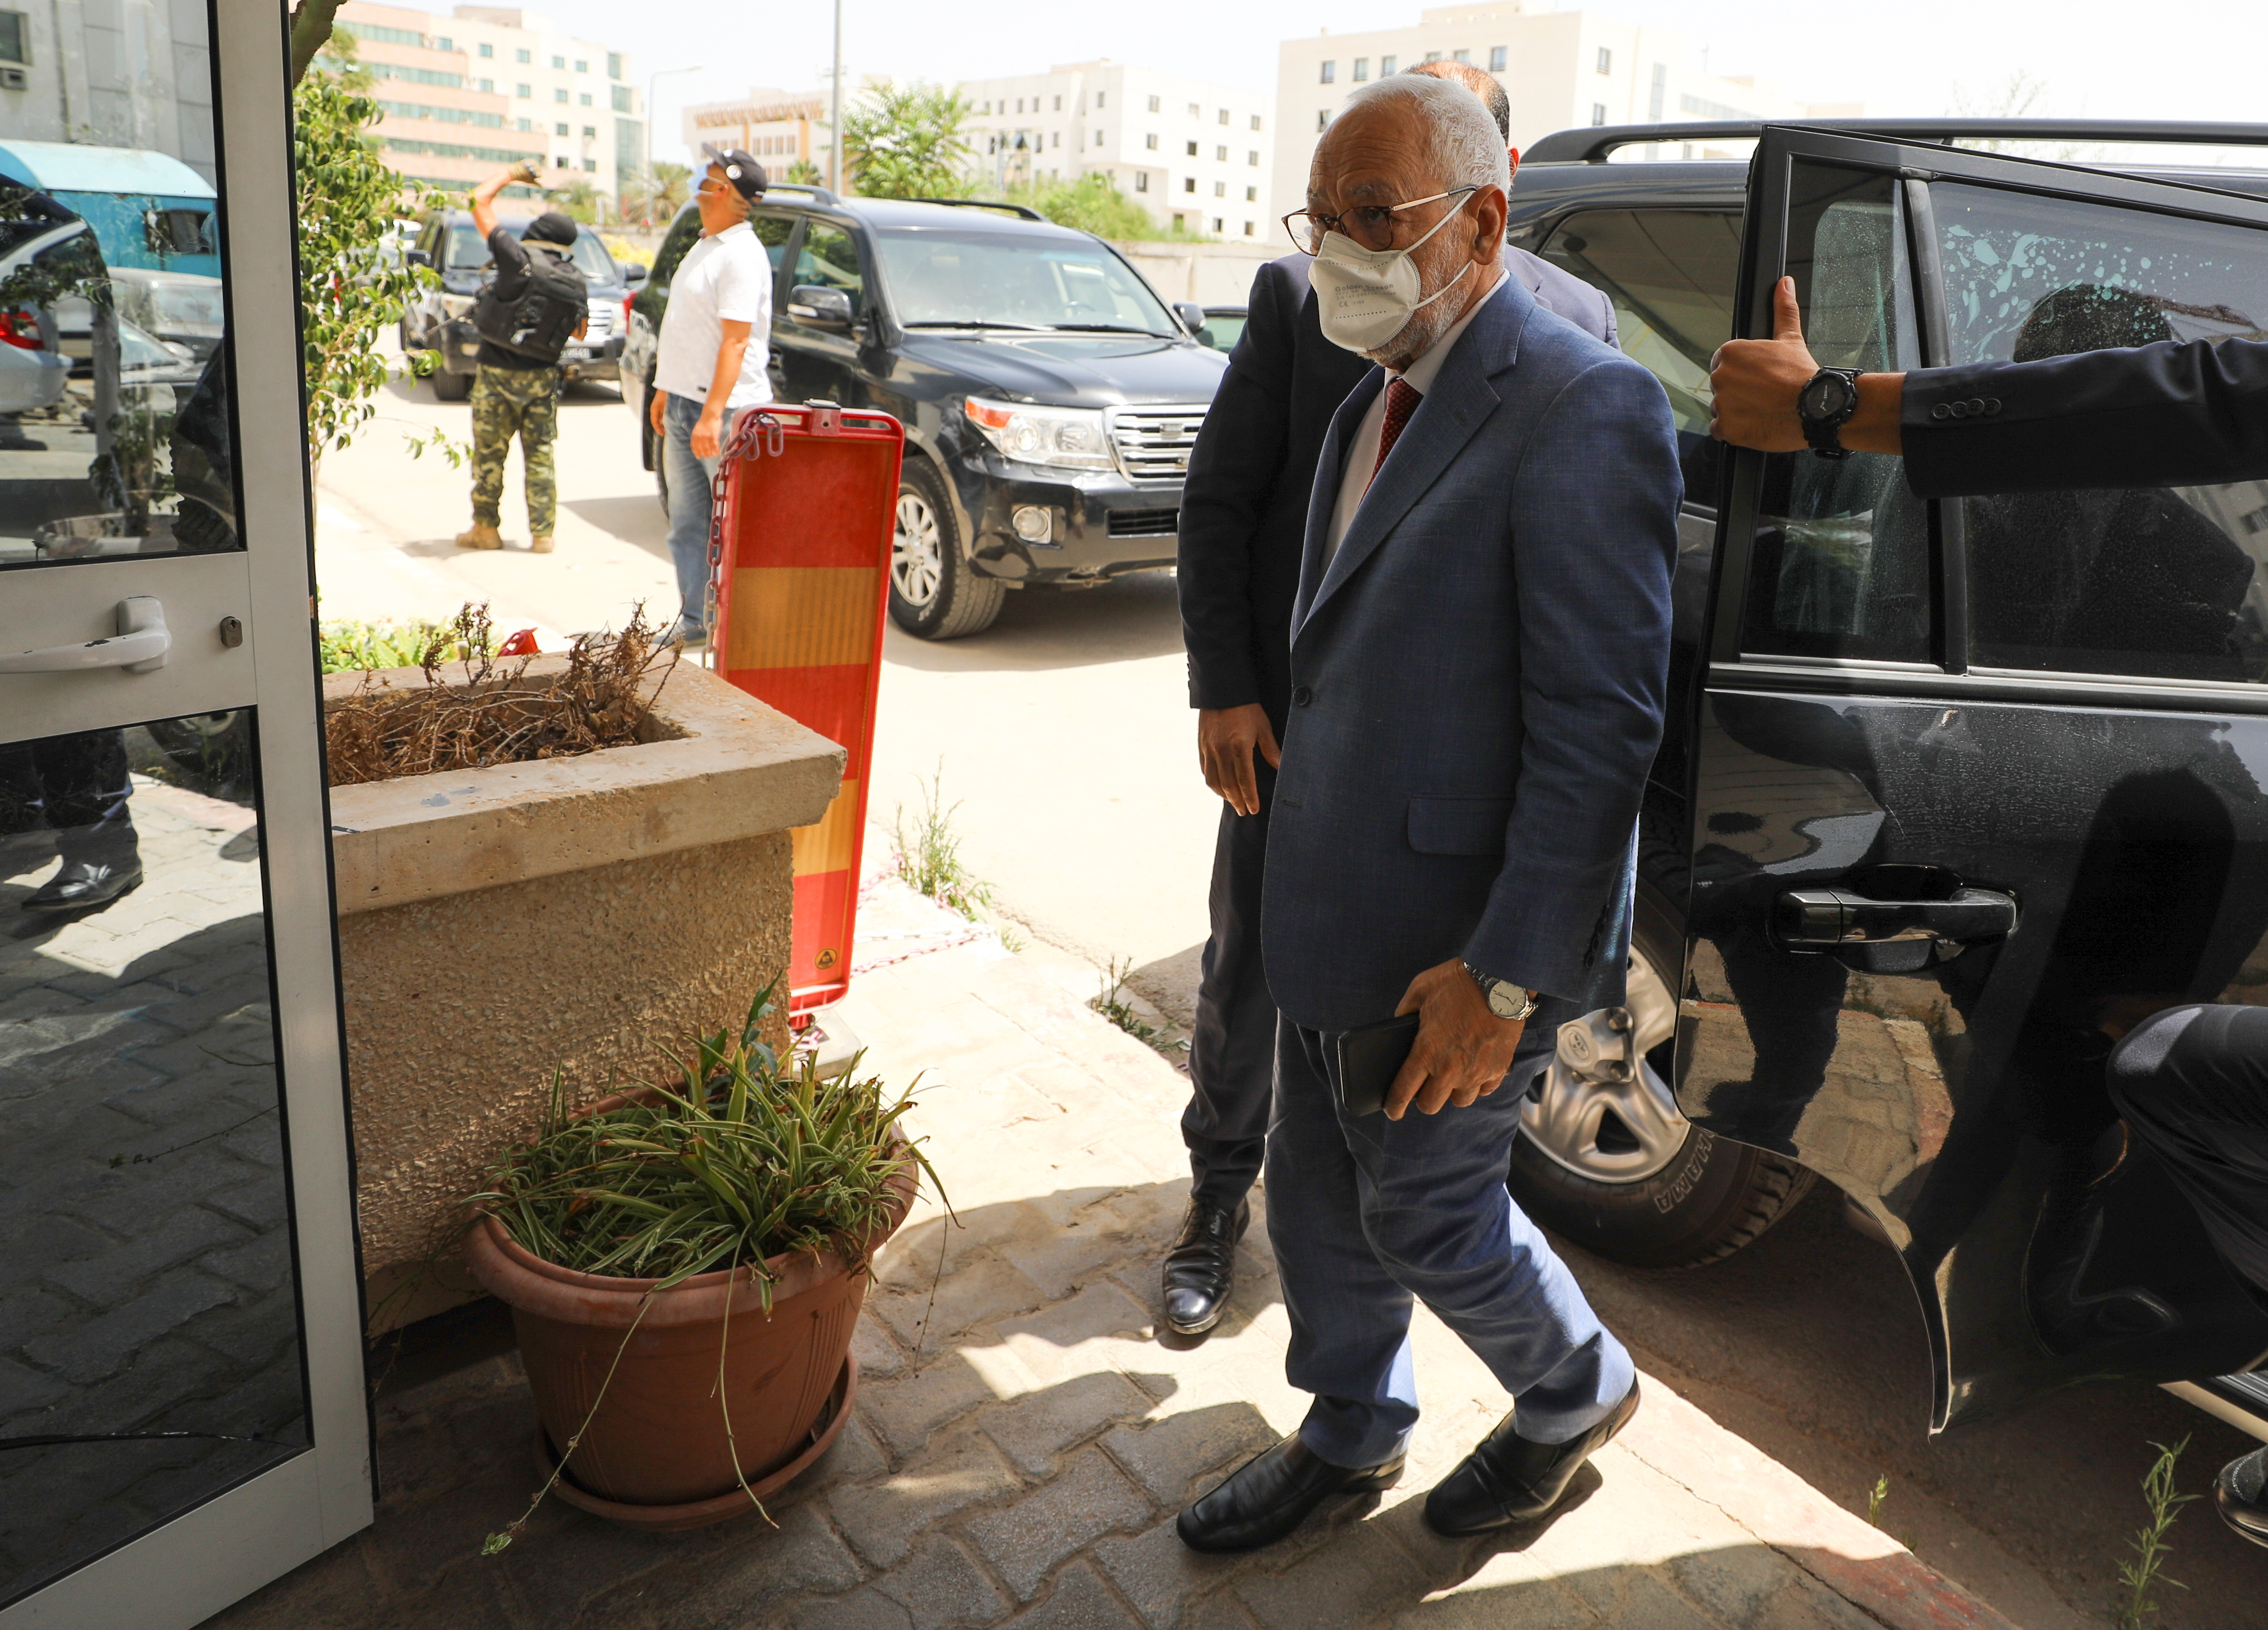 Parliament Speaker Rached Ghannouchi, head of the moderate Islamist Ennahda, arrives at the party's headquarters in Tunis, Tunisia, July 29, 2021. REUTERS/Ammar Awad